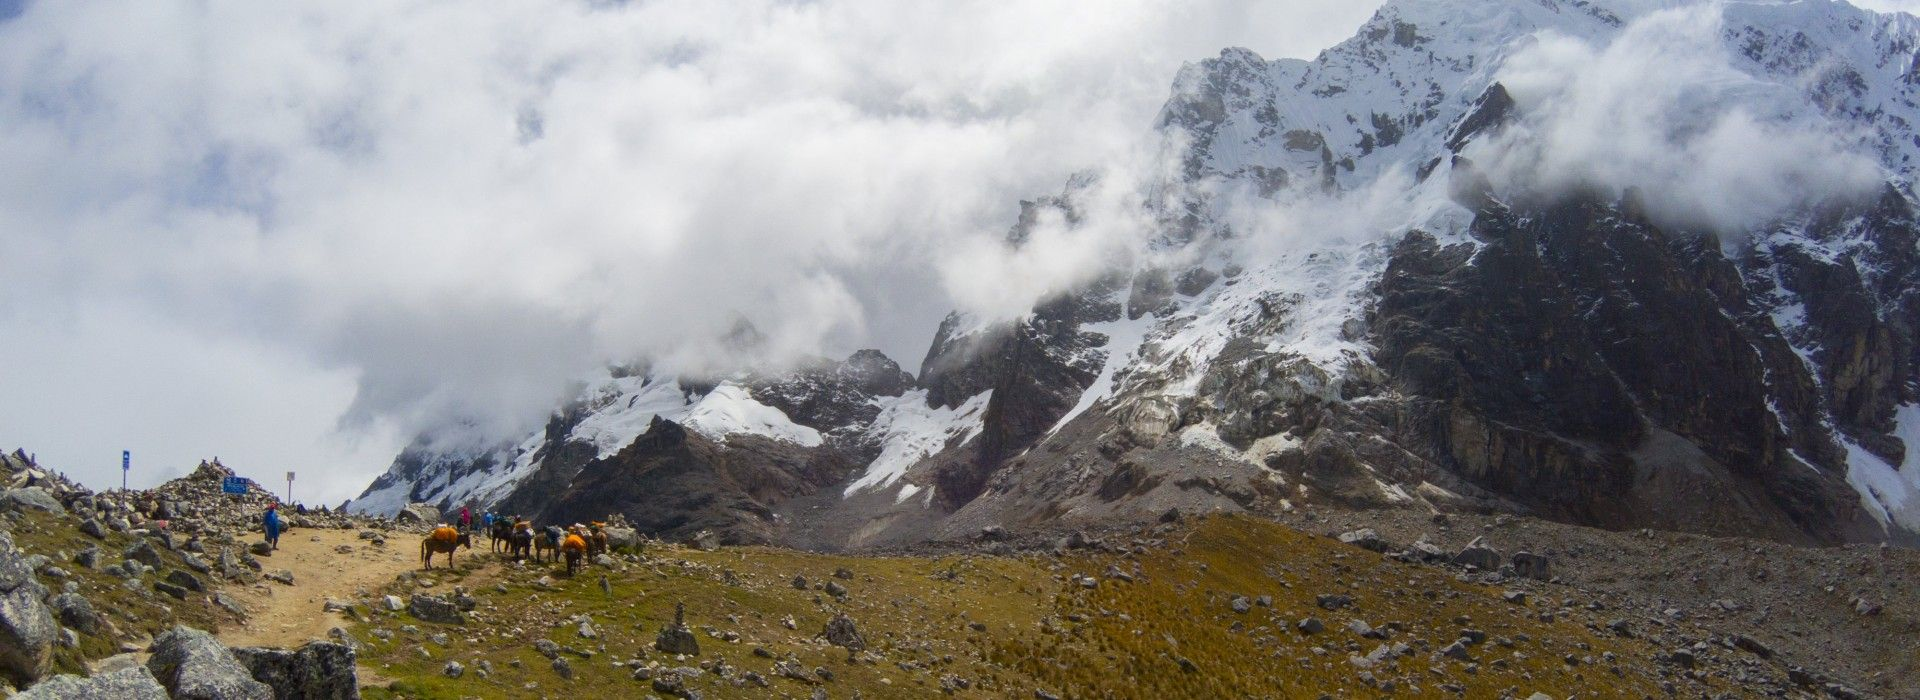 Expedition tours in South America